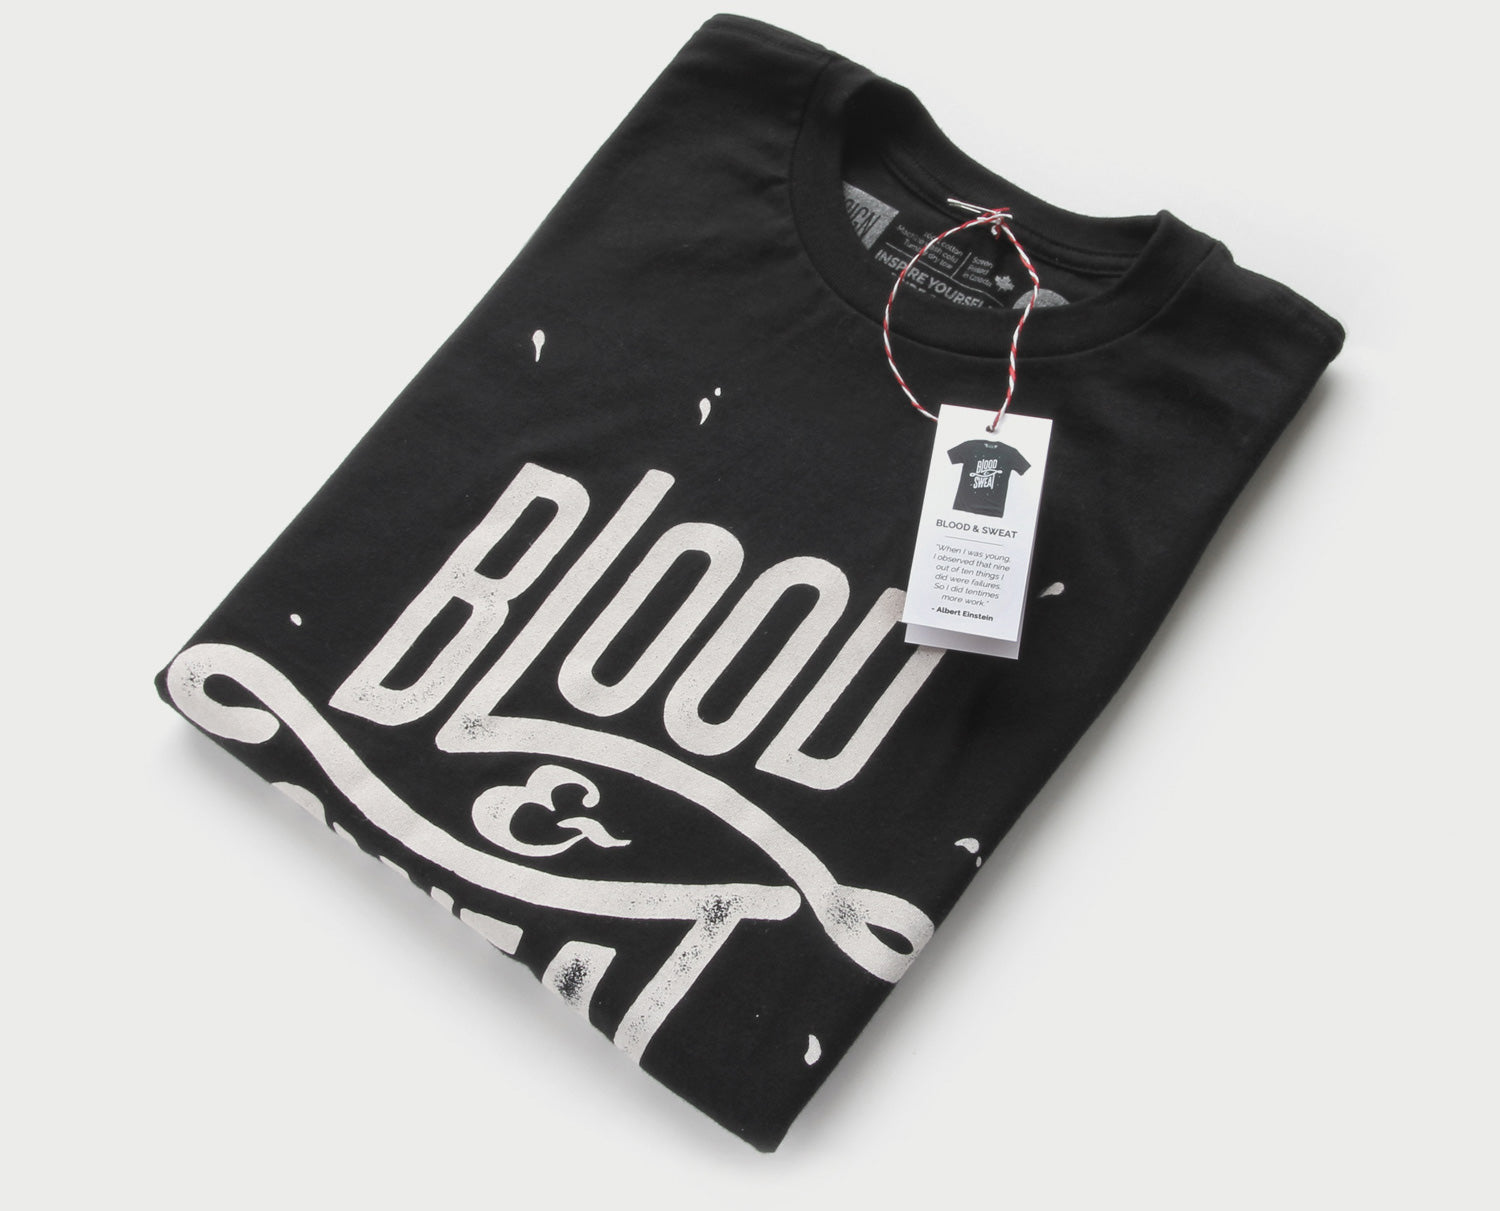 Blood & Sweat (BW) - Minimal t-shirt design by Design Different